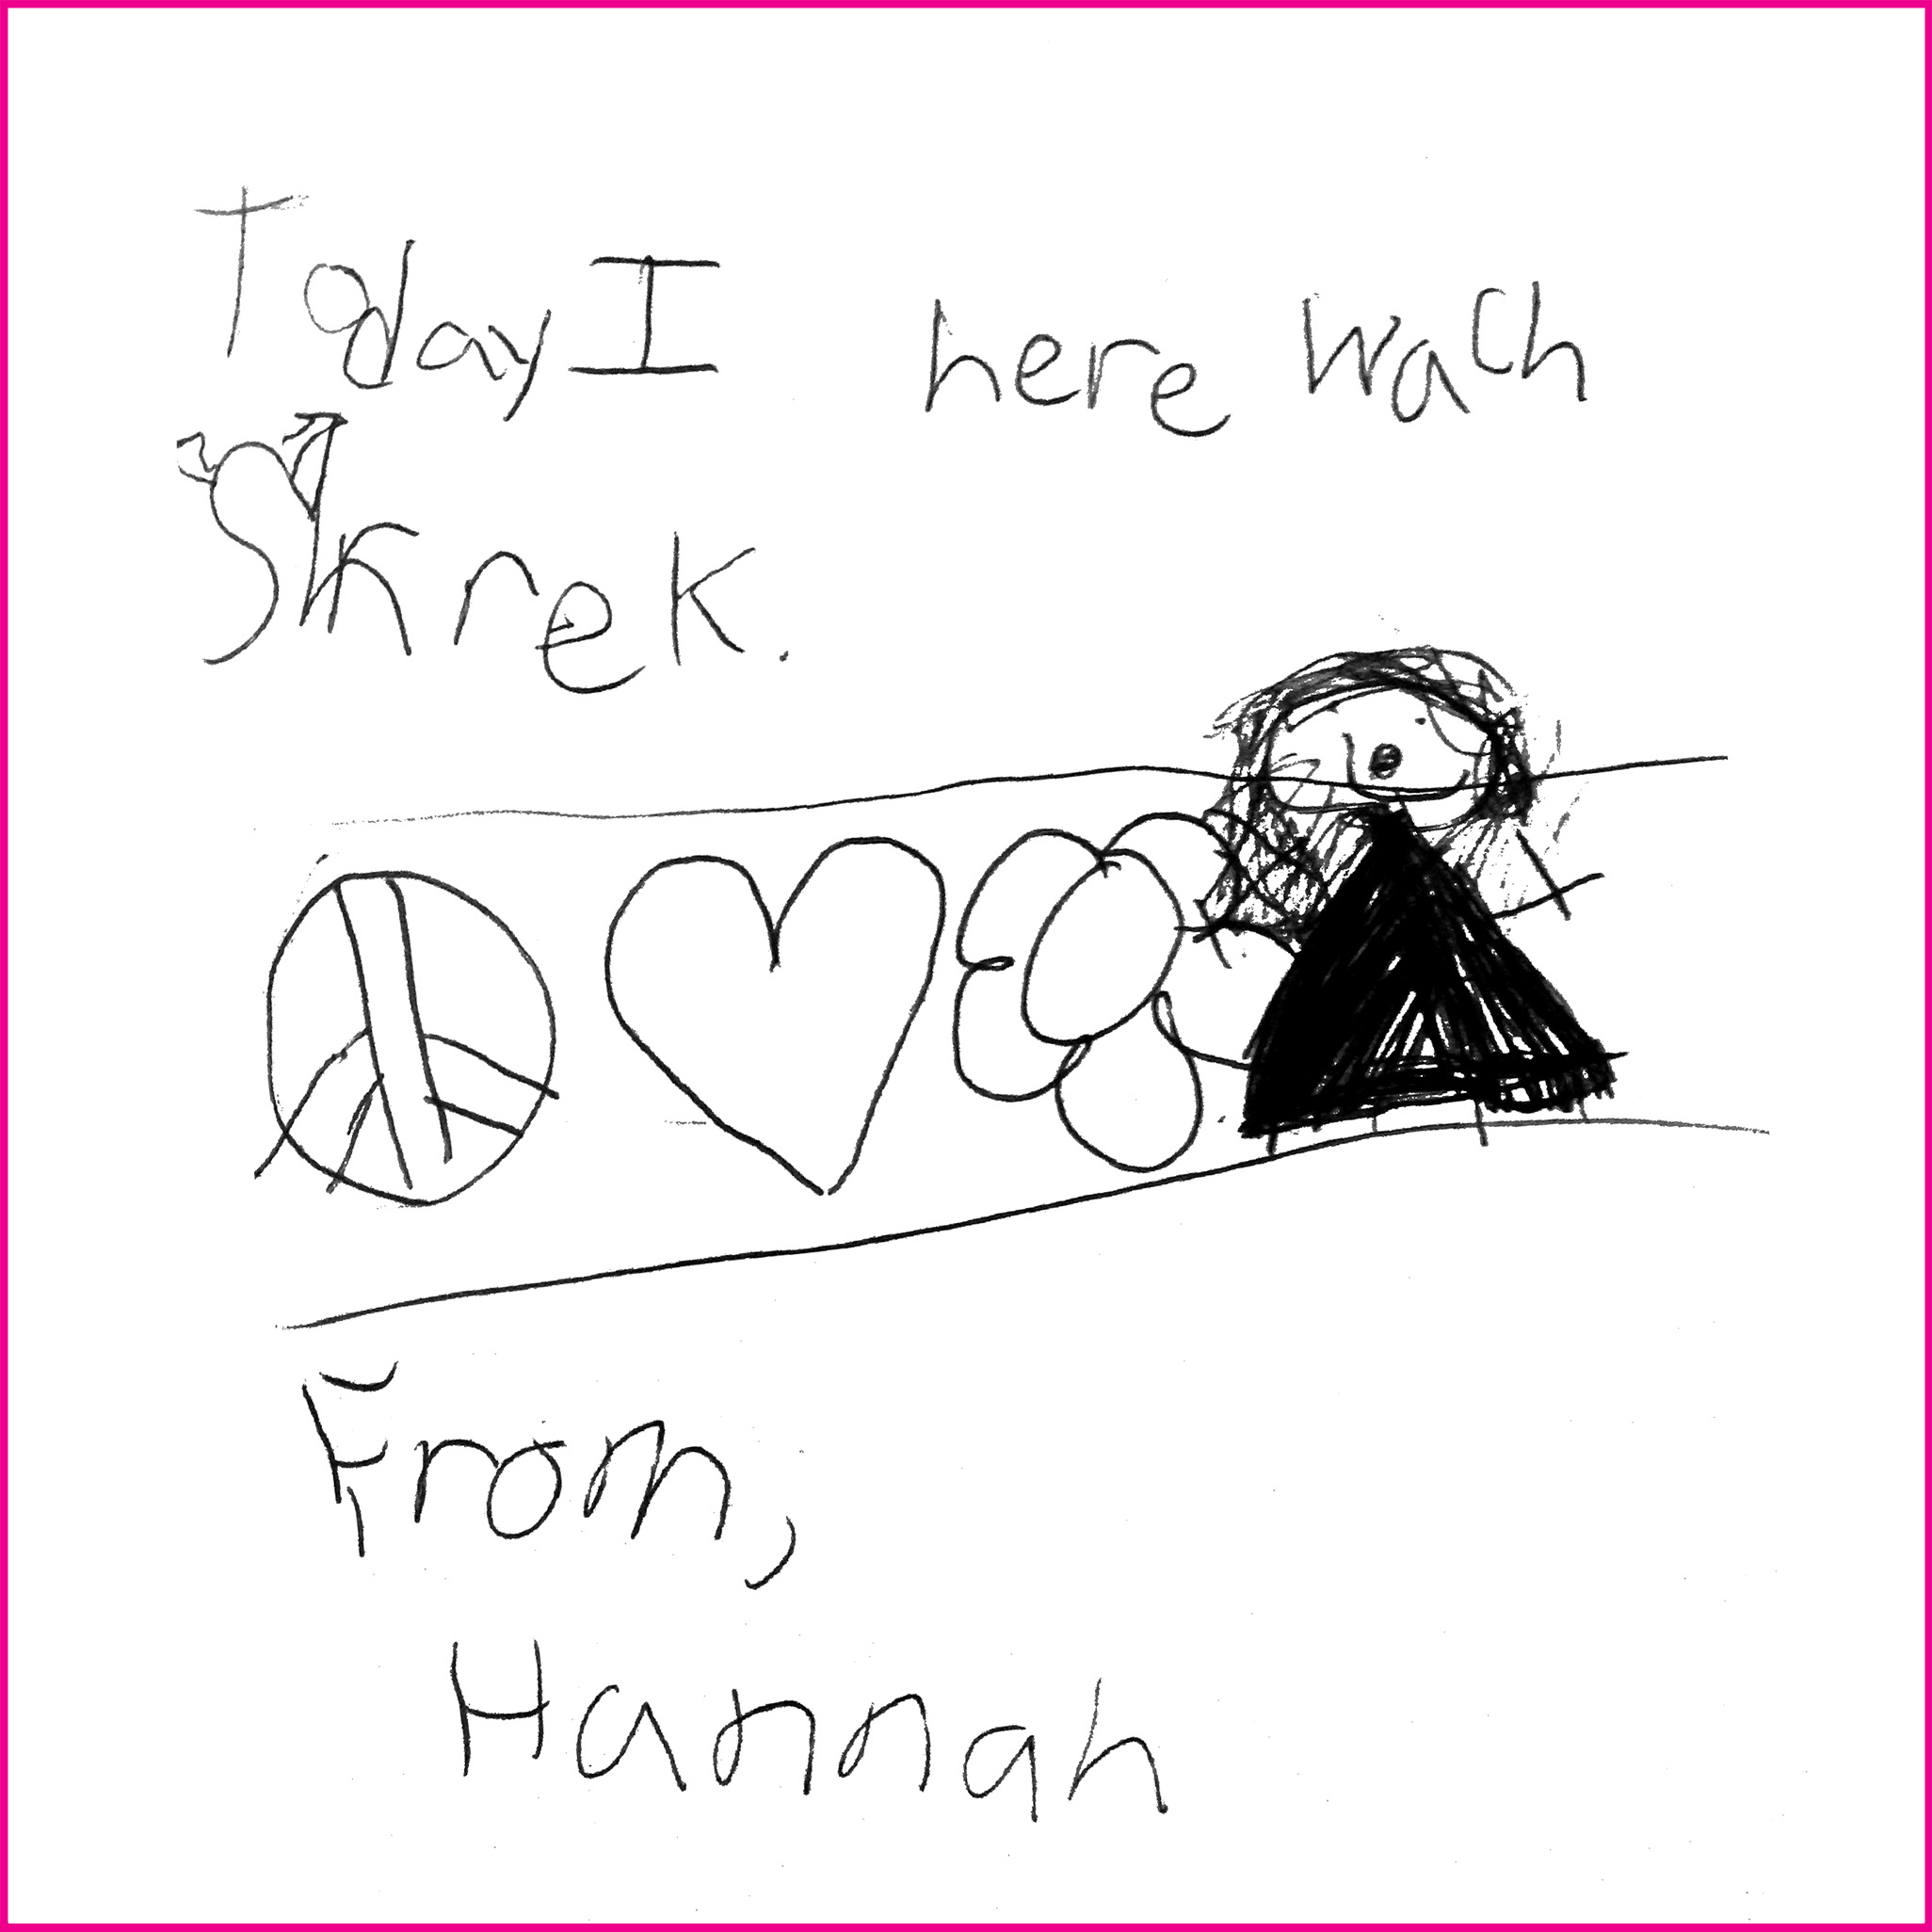 Today I here wach Shrek  From, Hannah